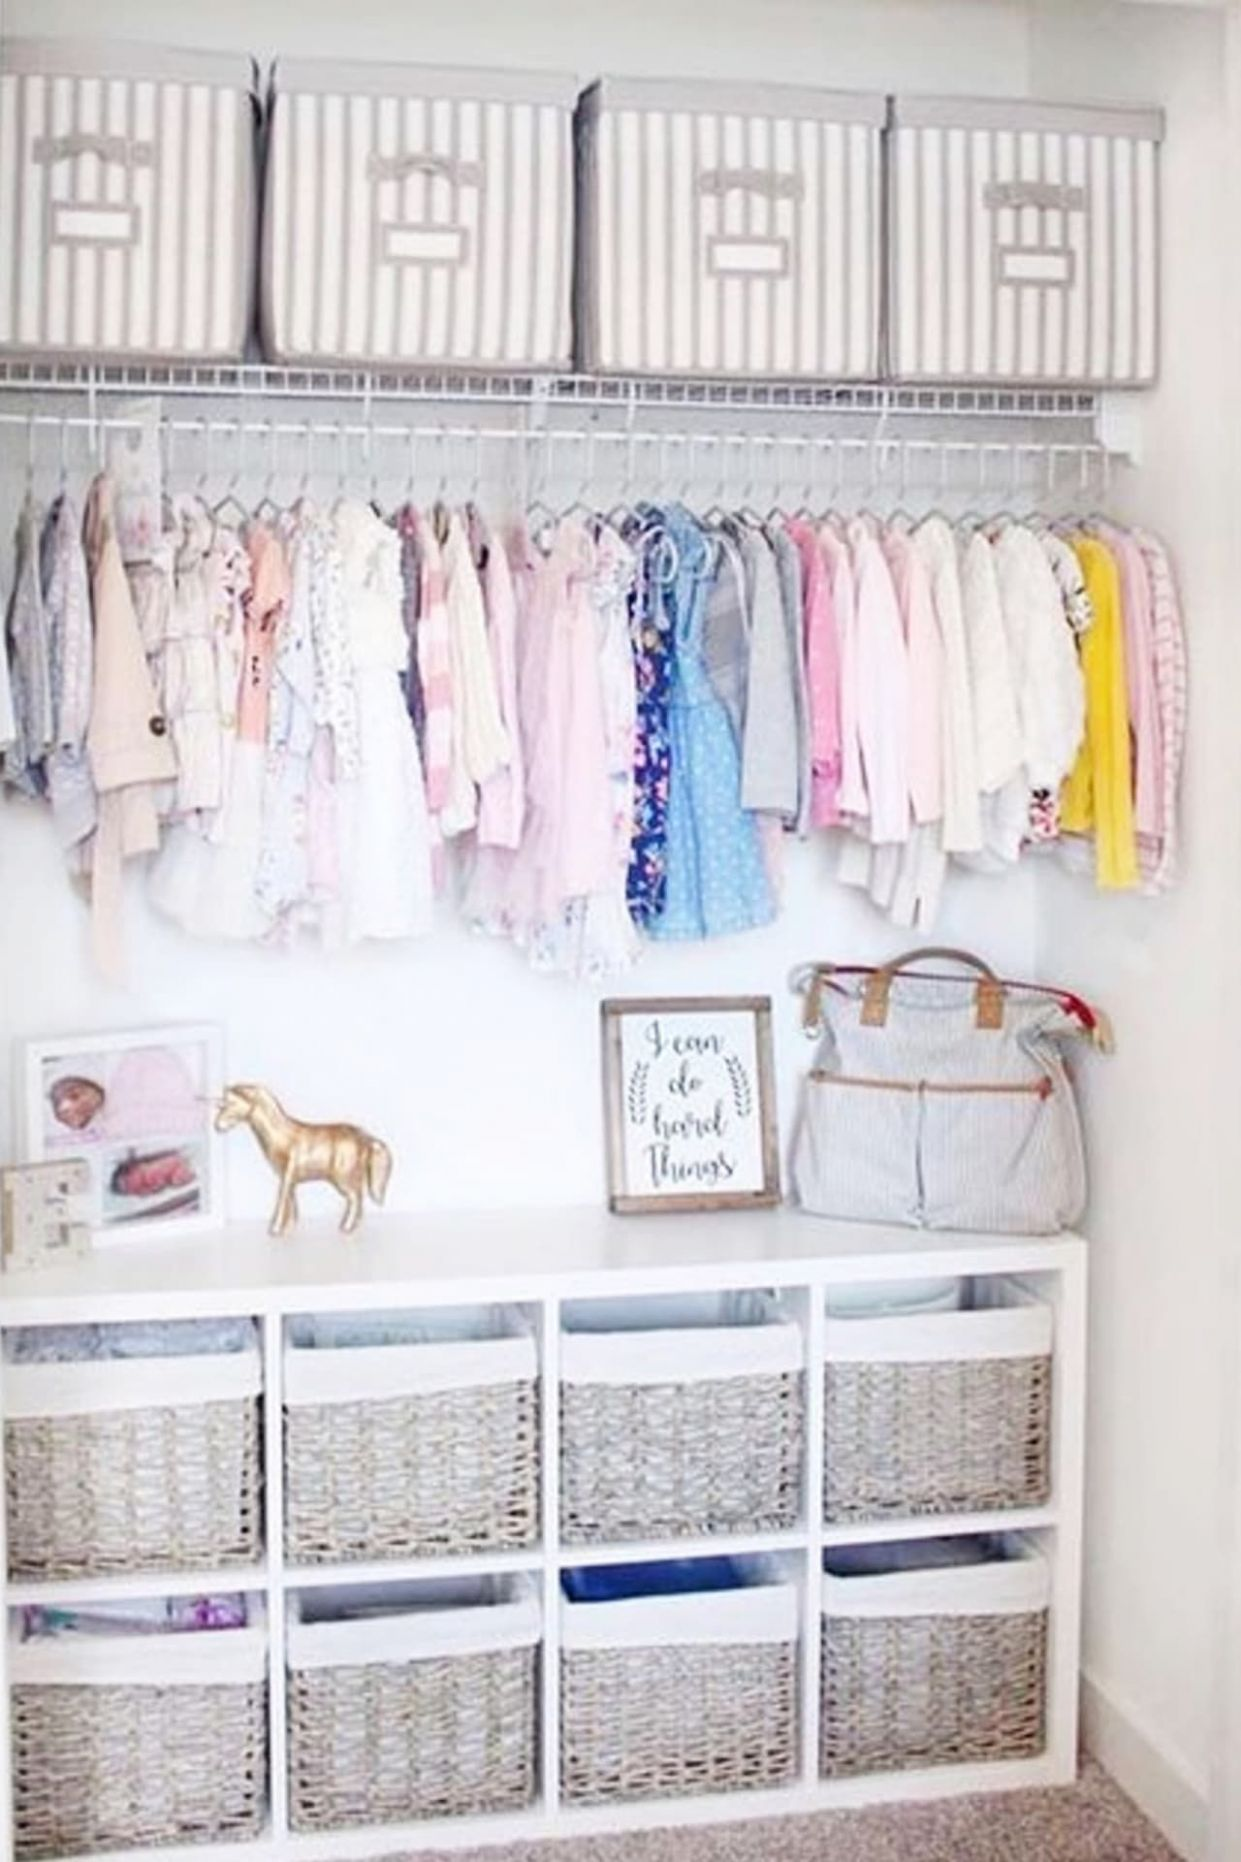 Baby Closet Ideas: 8 Nursery Closet Organization, Storage and ..